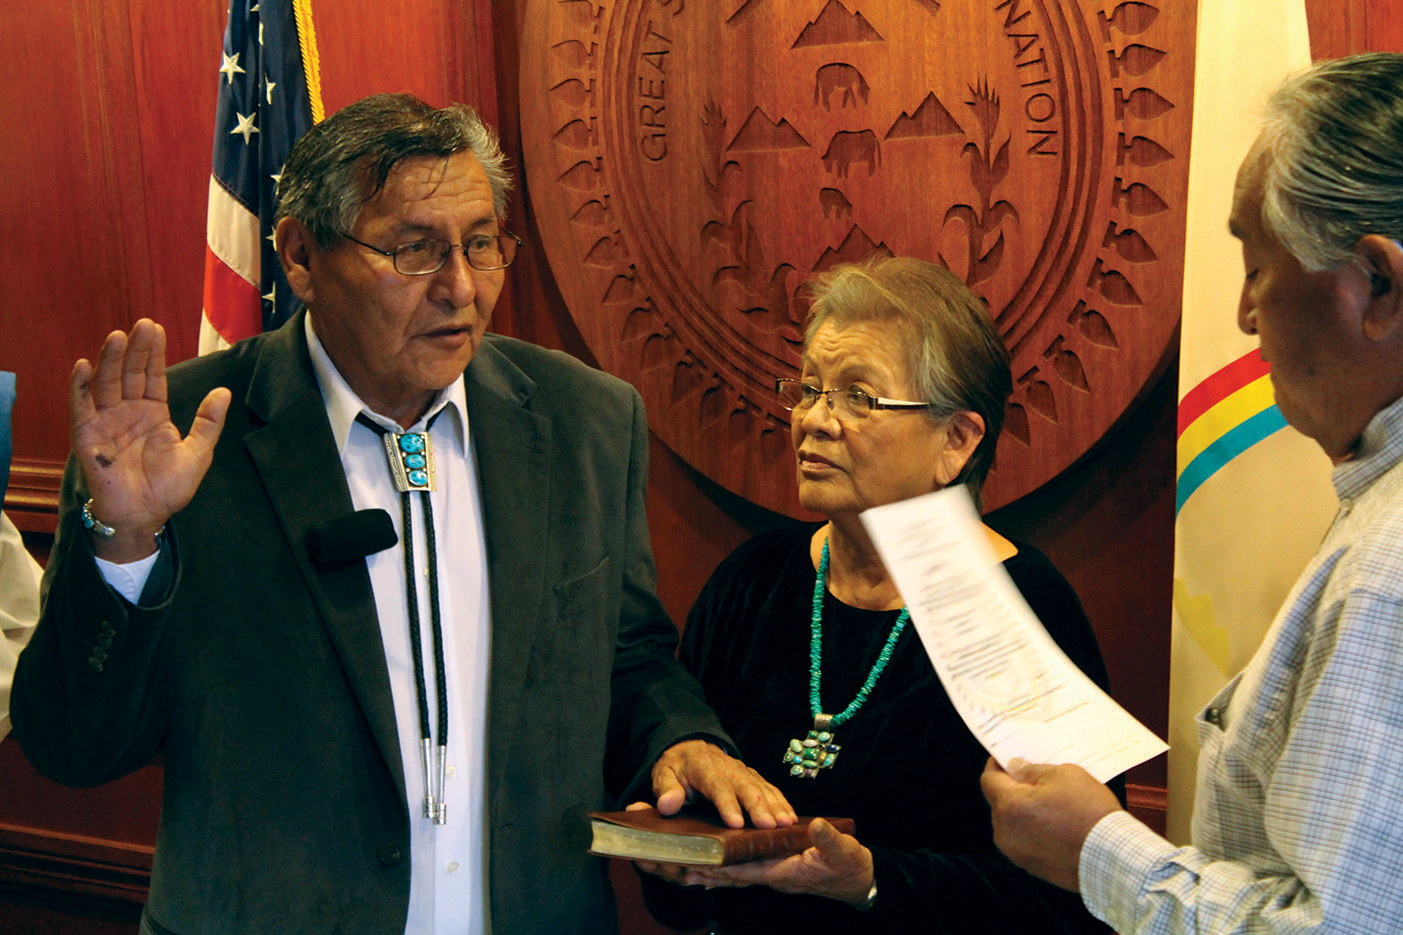 Navajo Nation leader starts second term despite election loss